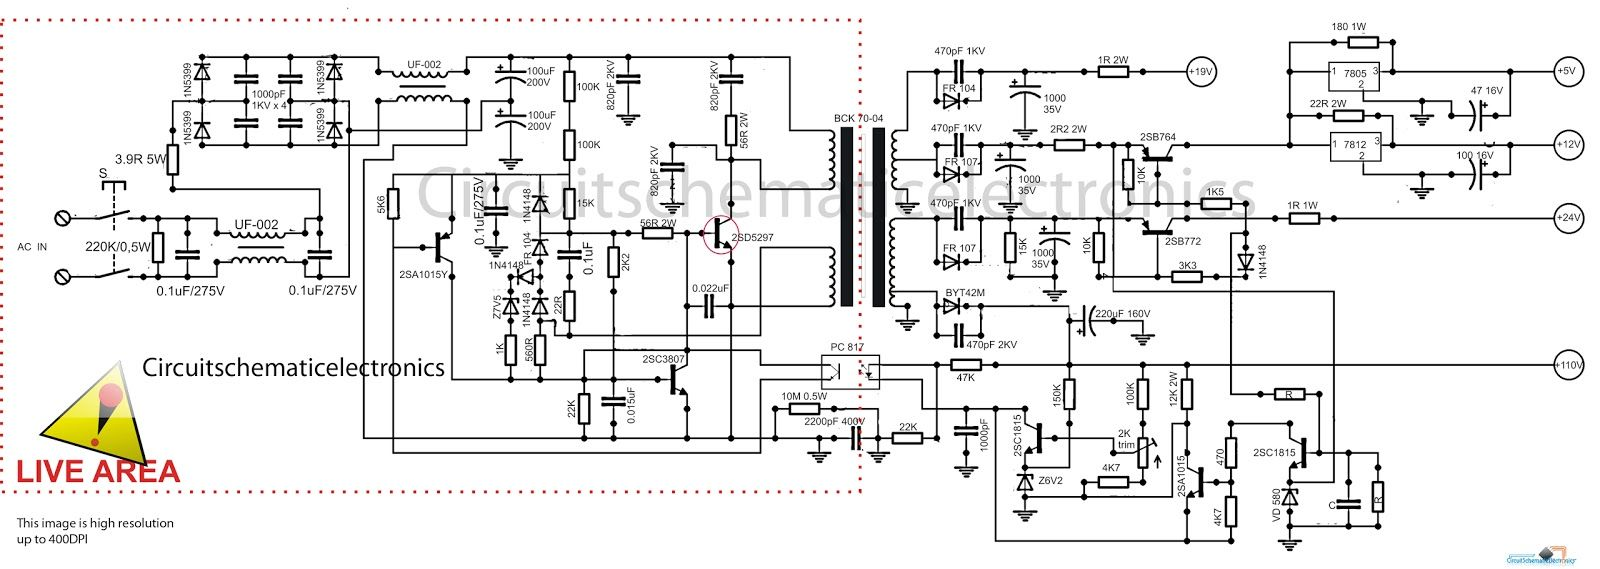 hight resolution of switching power suplly for color television circuit electronic circuit